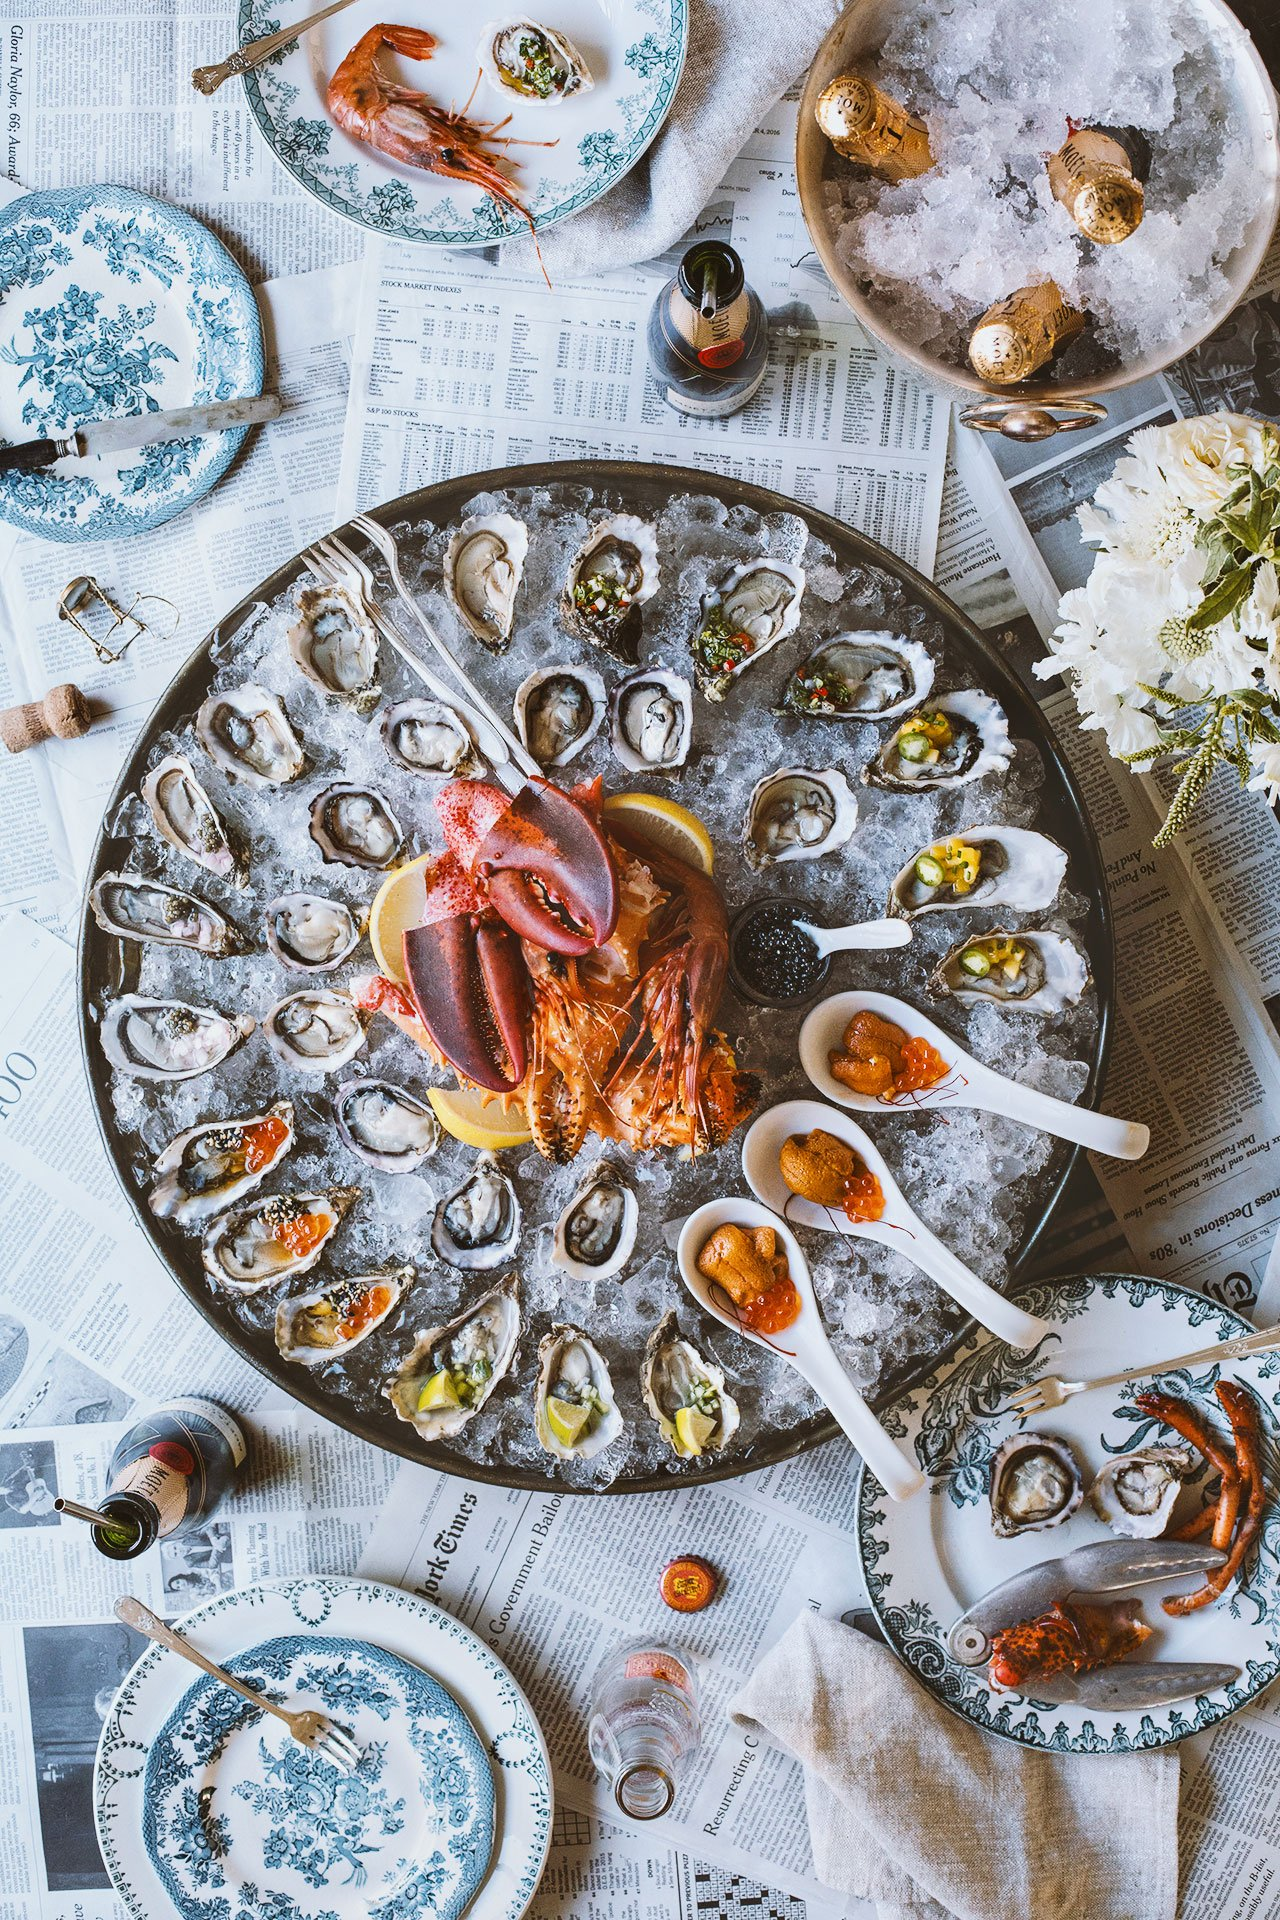 How To Throw A Raw Seafood Party | HonestlyYUM (honestlyyum.com)